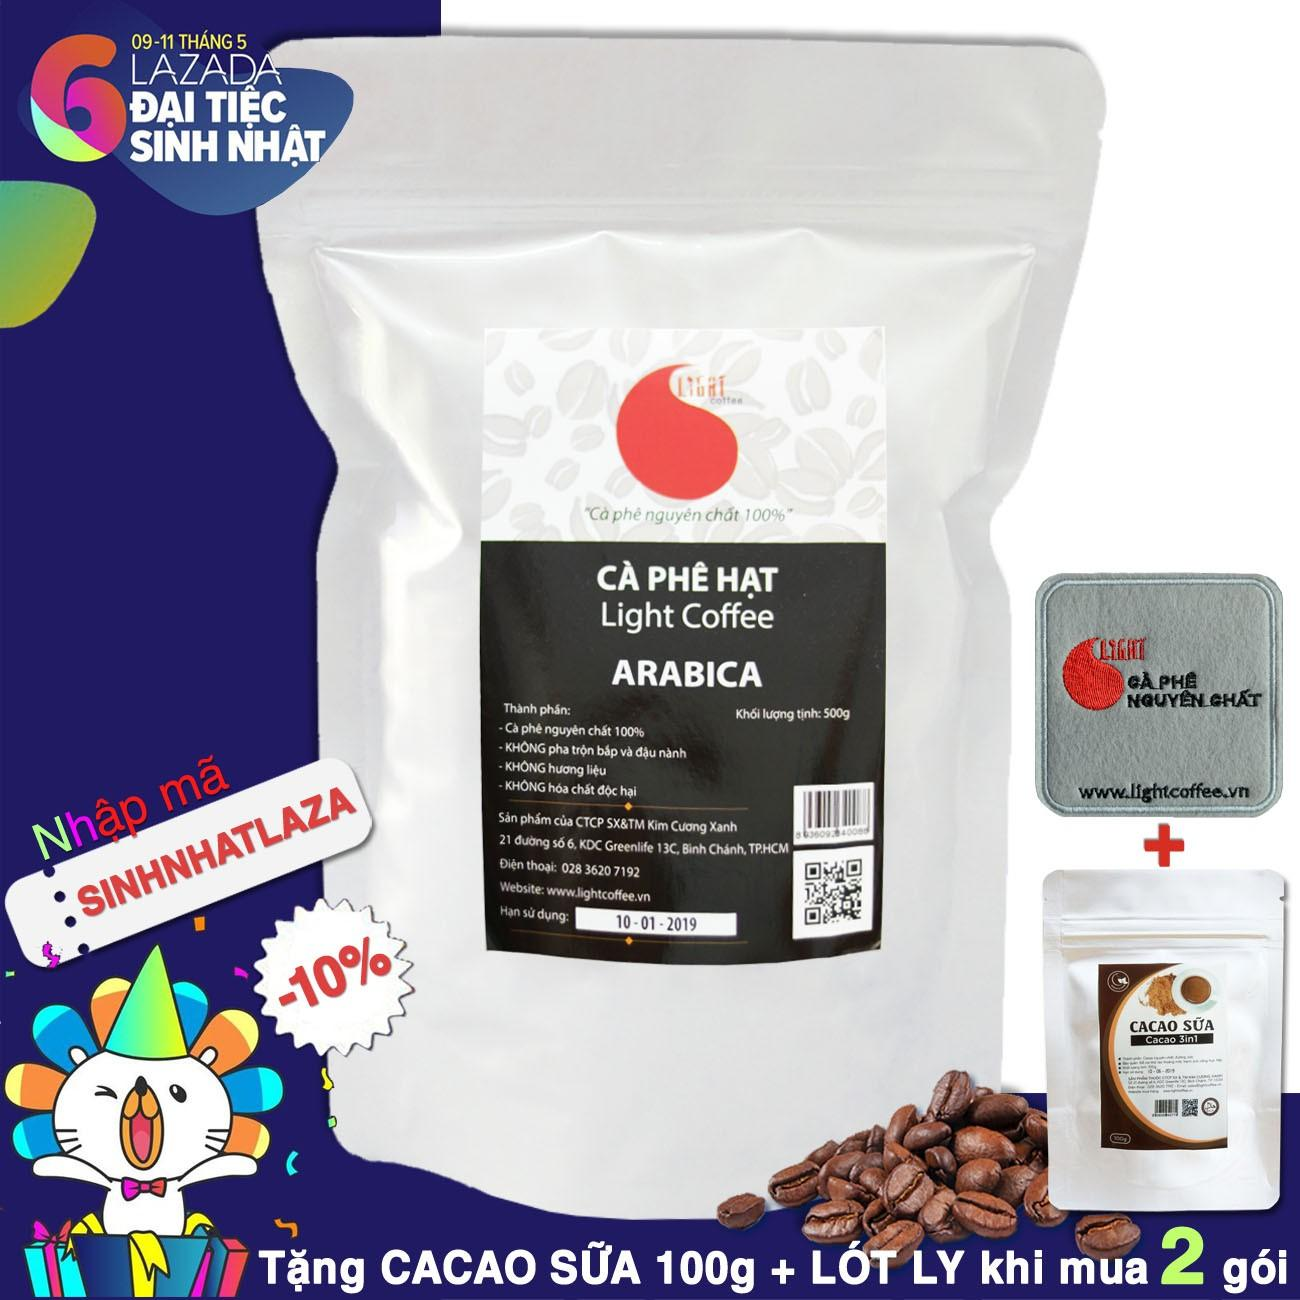 Mua Ca Phe Hạt Arabica Nguyen Chất 100 Light Coffee 500Gr Light Coffee Rẻ